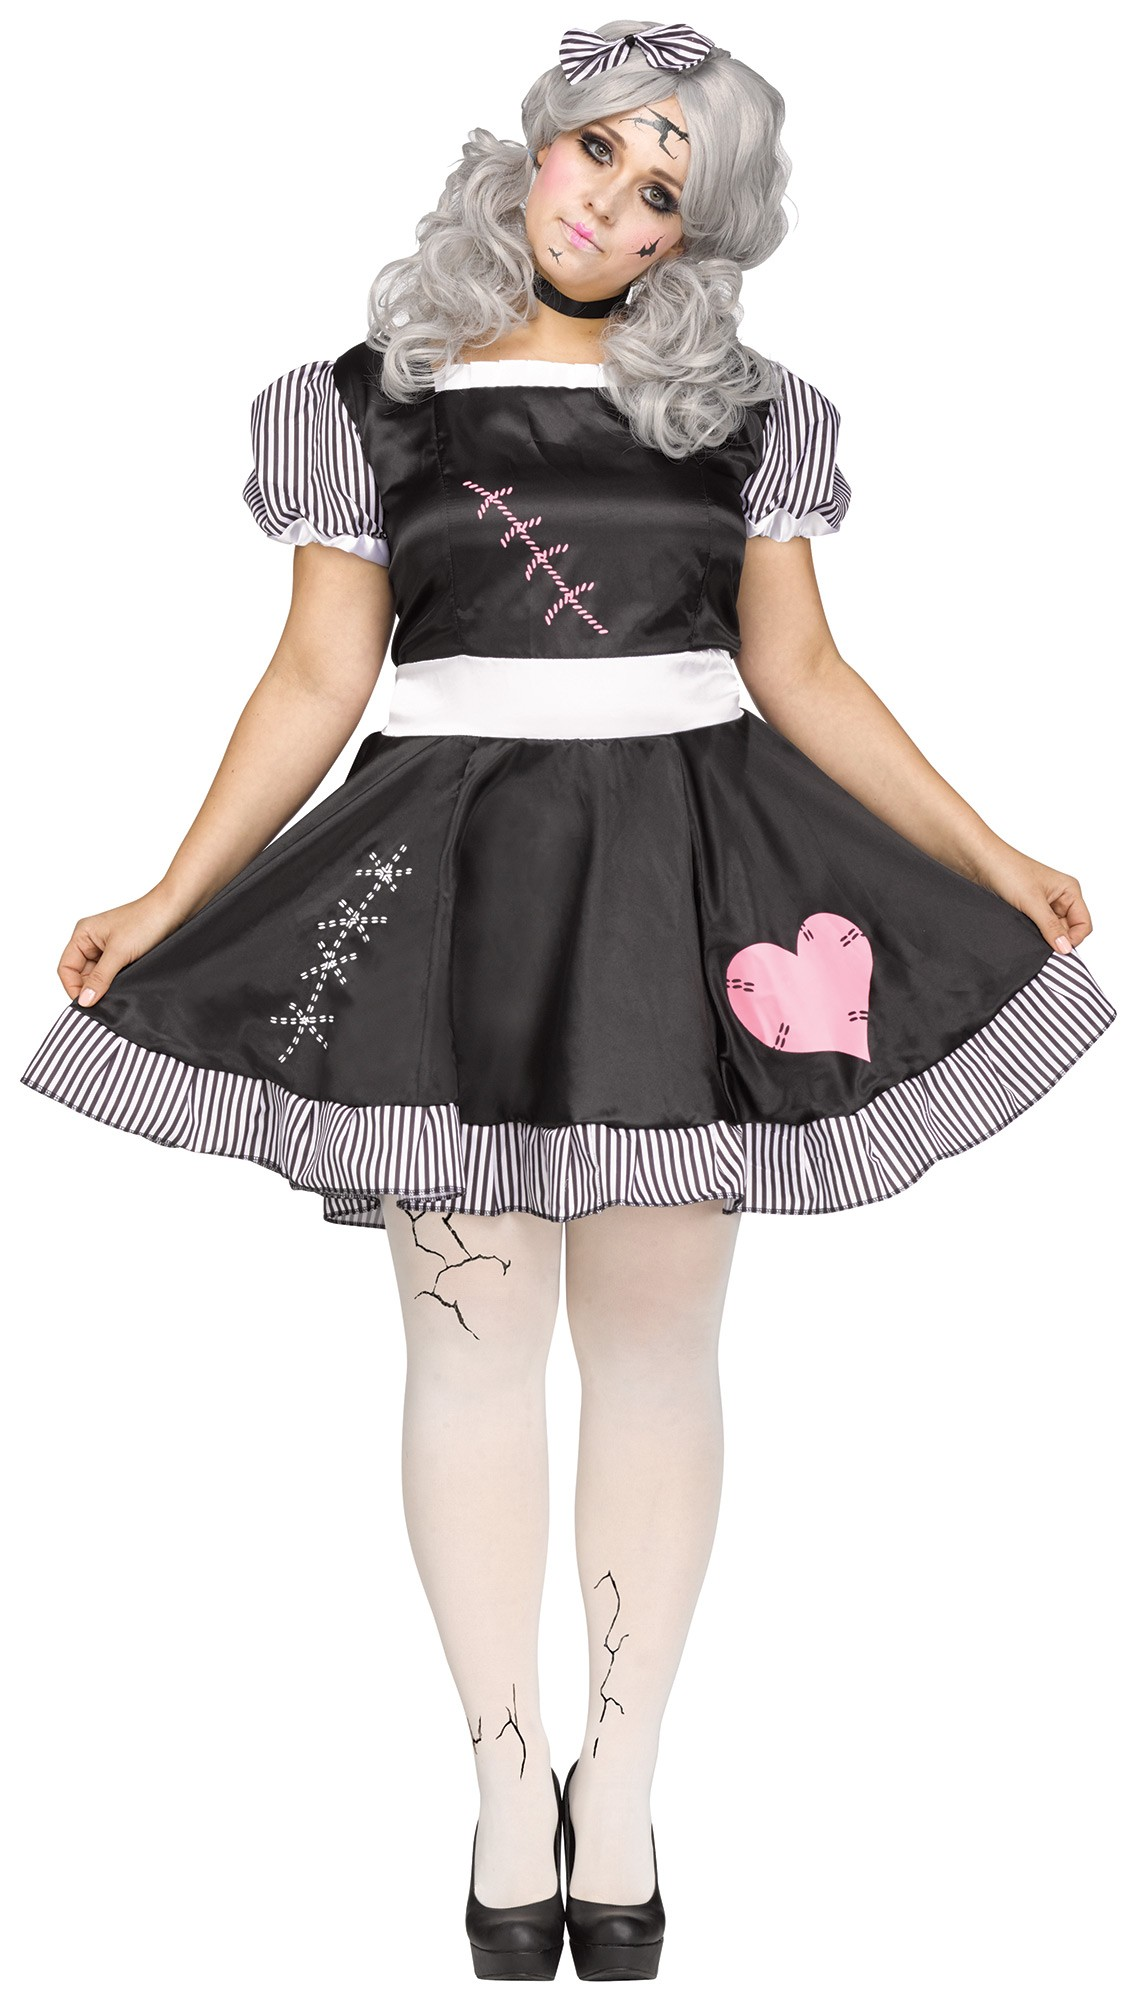 Plus Size Costumes Mega Fancy Dress